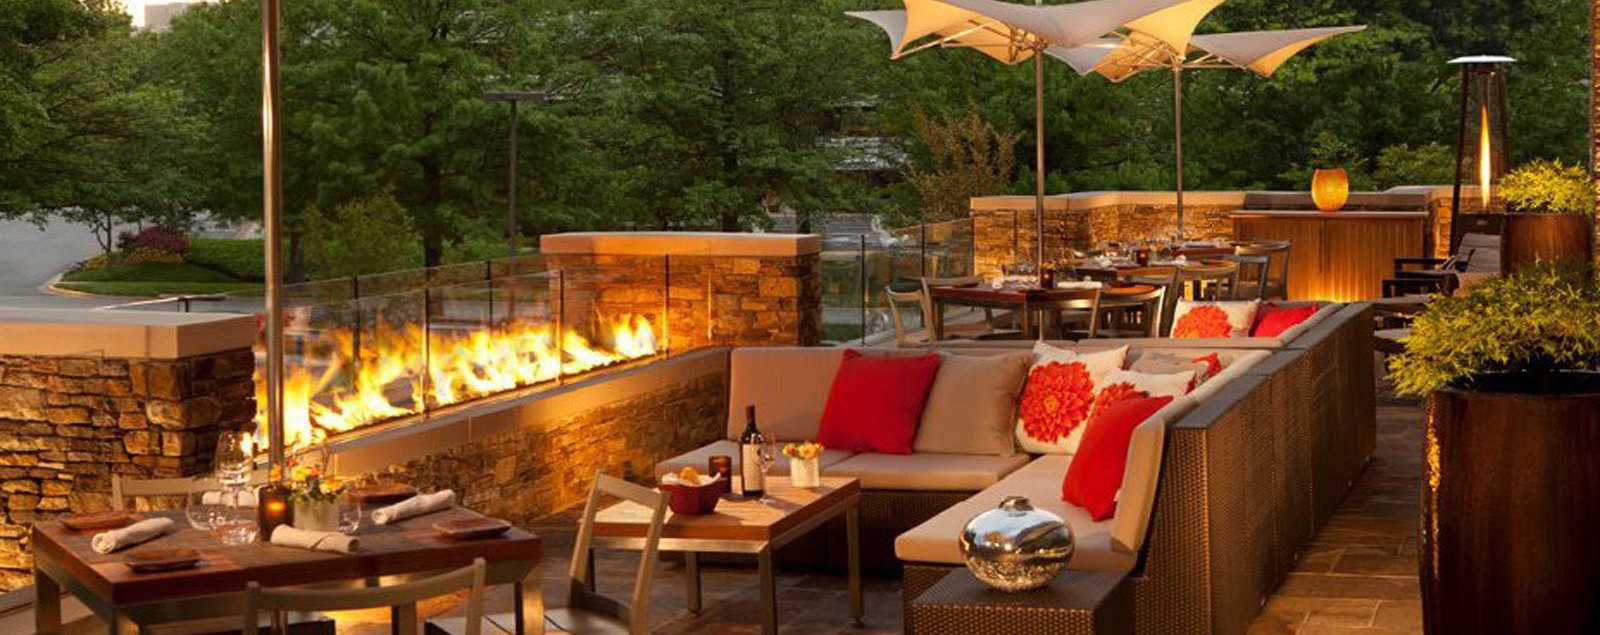 Outdoor dining restaurants with patios fairfax county for Restaurants with outdoor seating